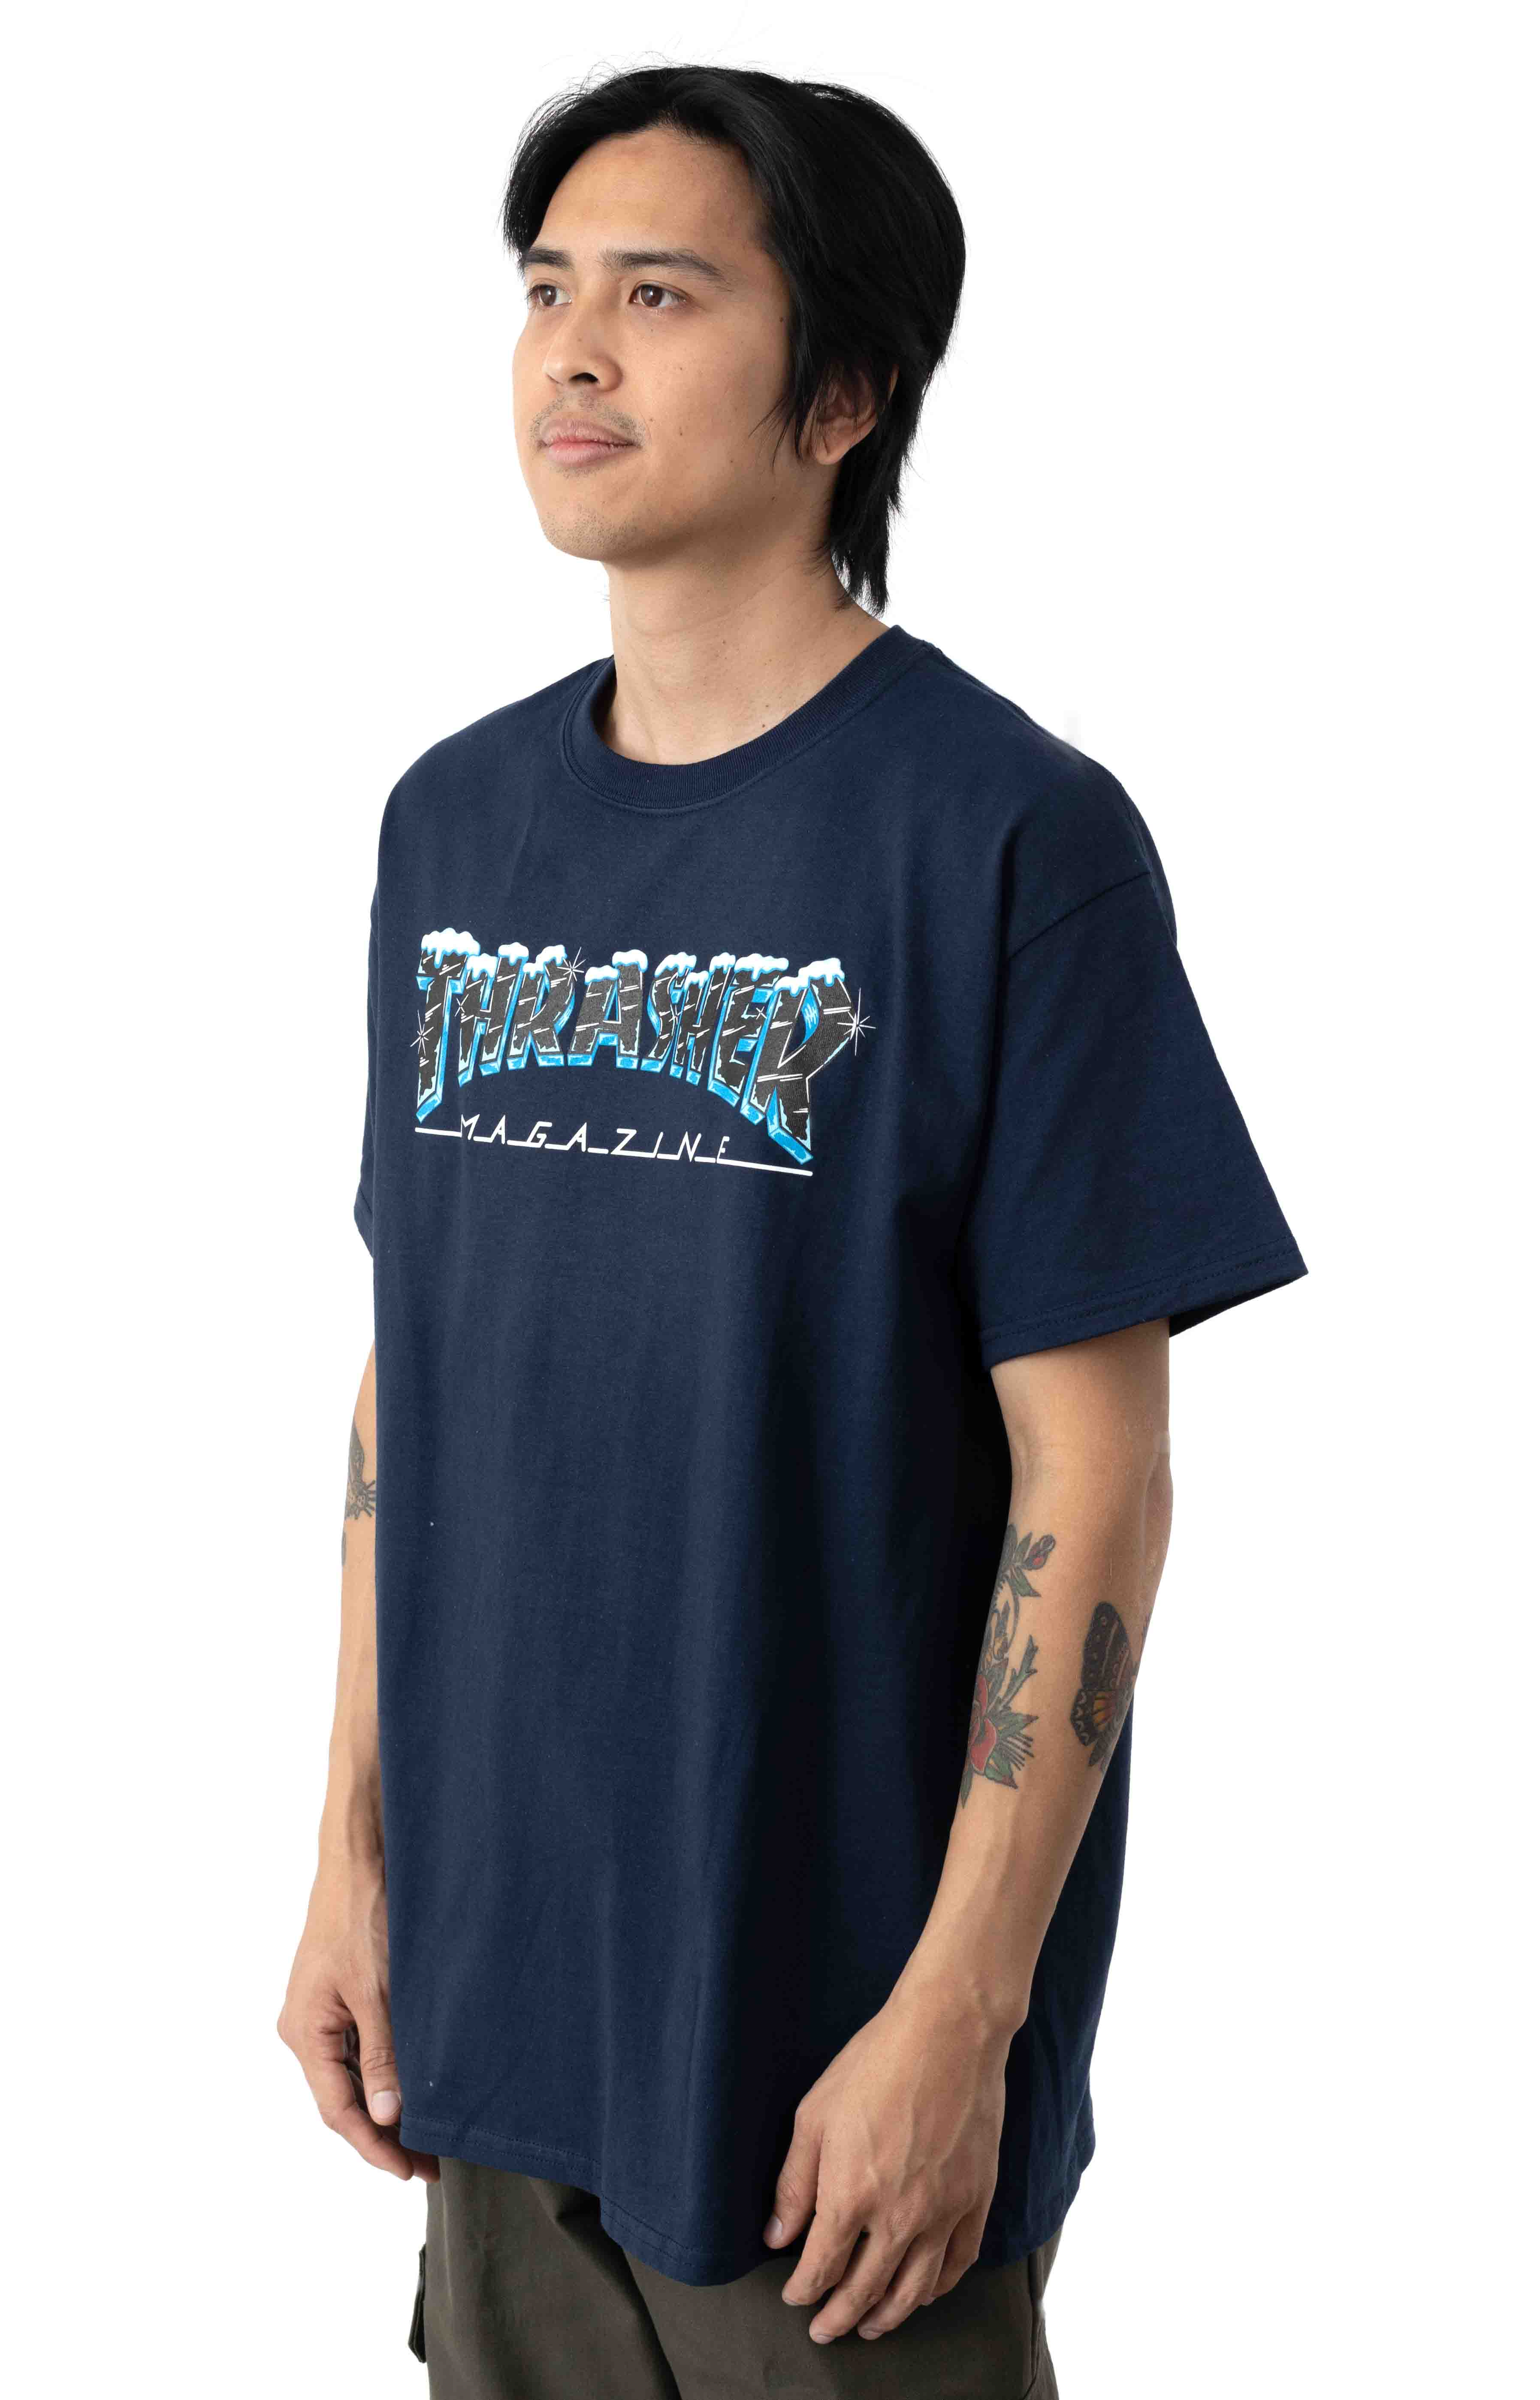 Black Ice T-Shirt - Navy Blue  2